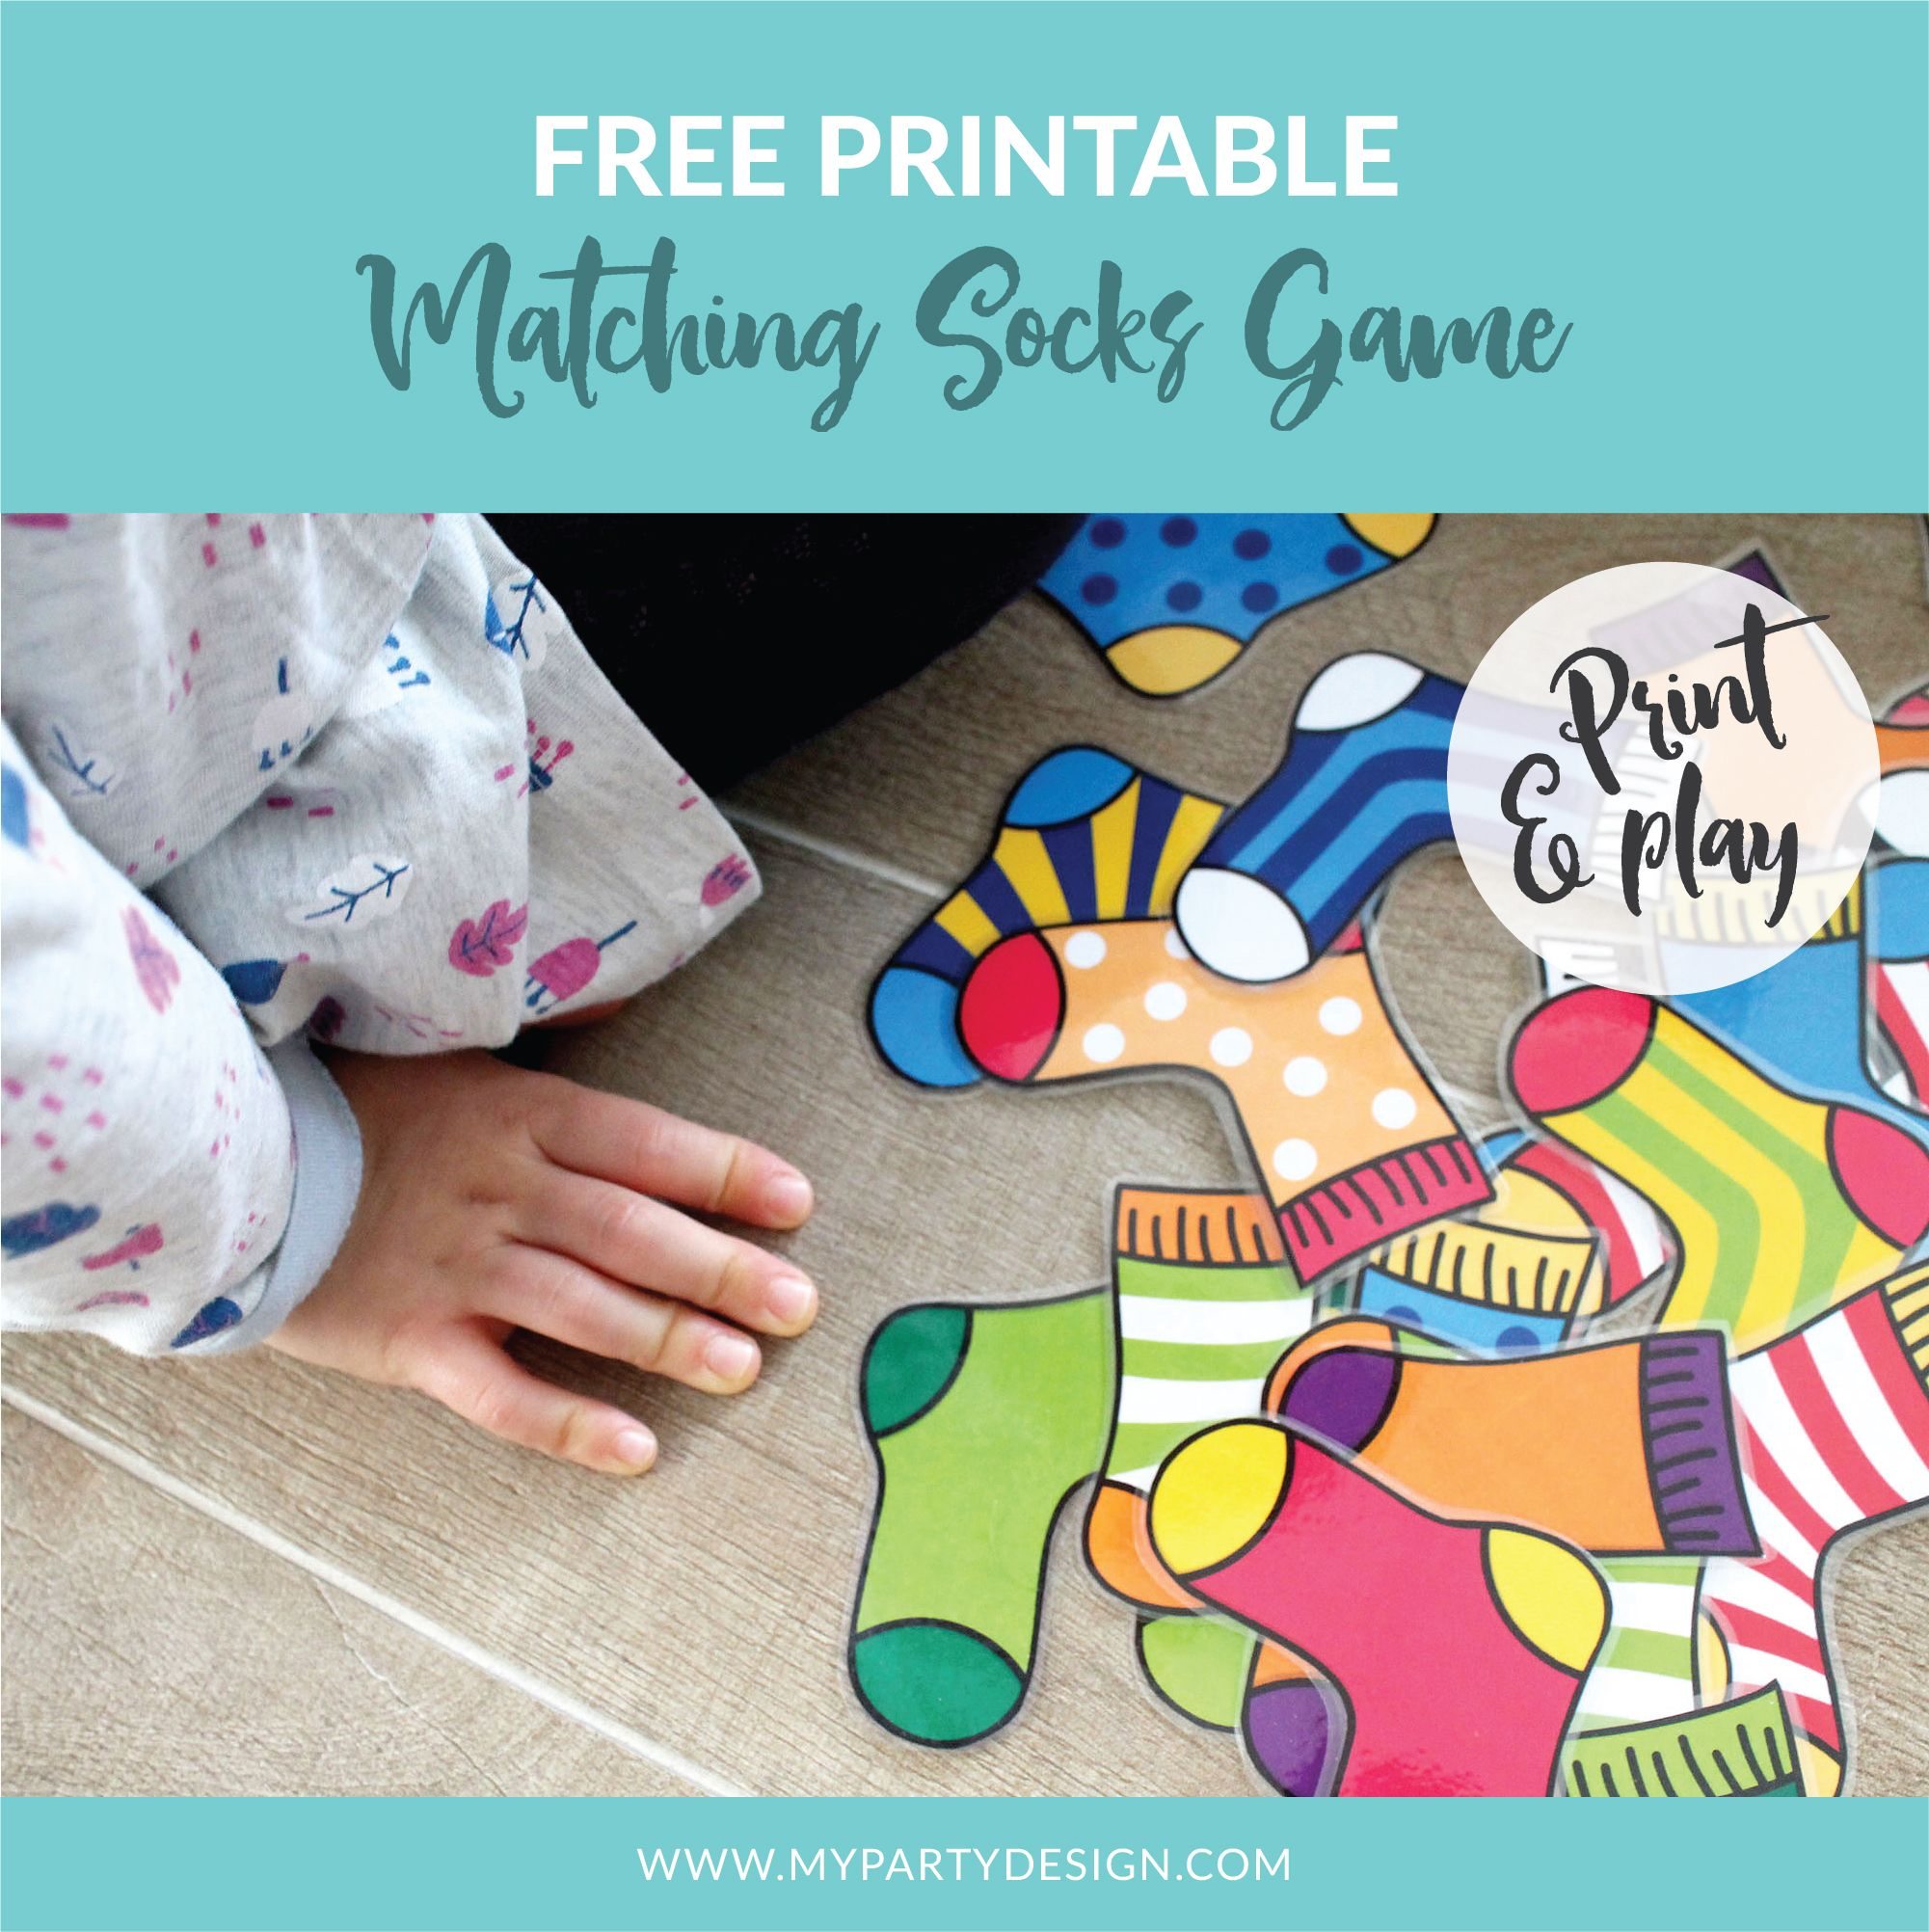 Matching Socks Game FREE Printable | My Party Design